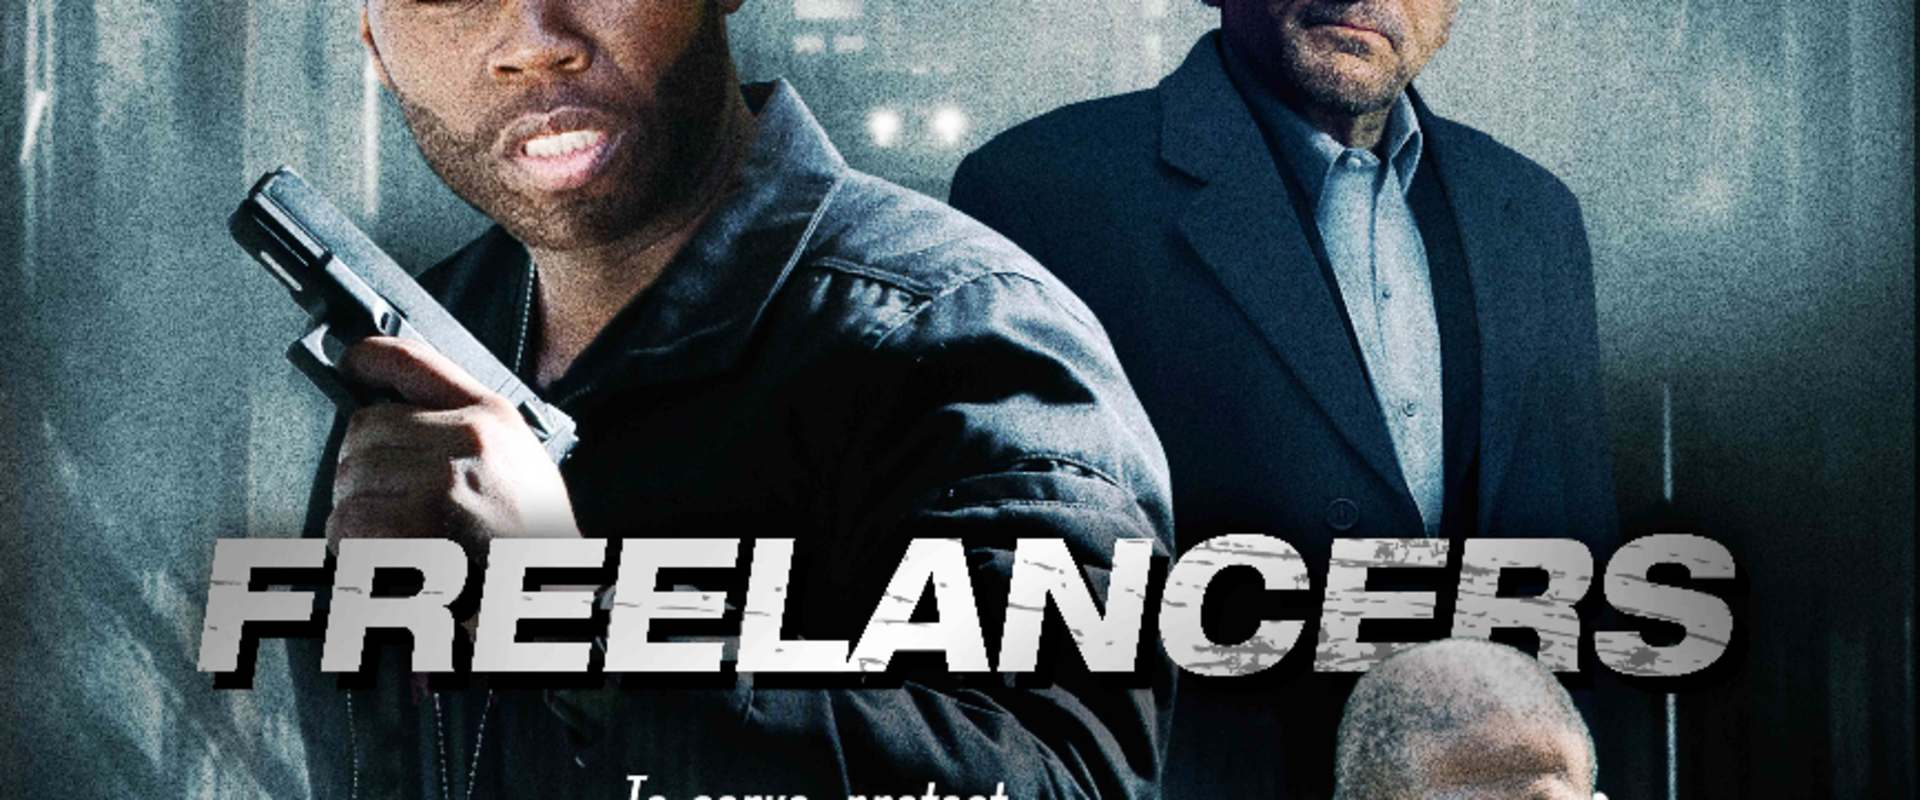 Watch Freelancers On Netflix Today Netflixmoviescom